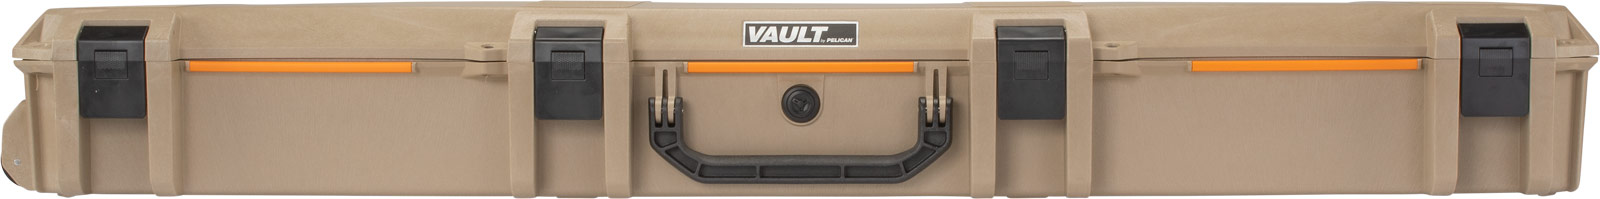 pelican vault v800 two primary weapon case